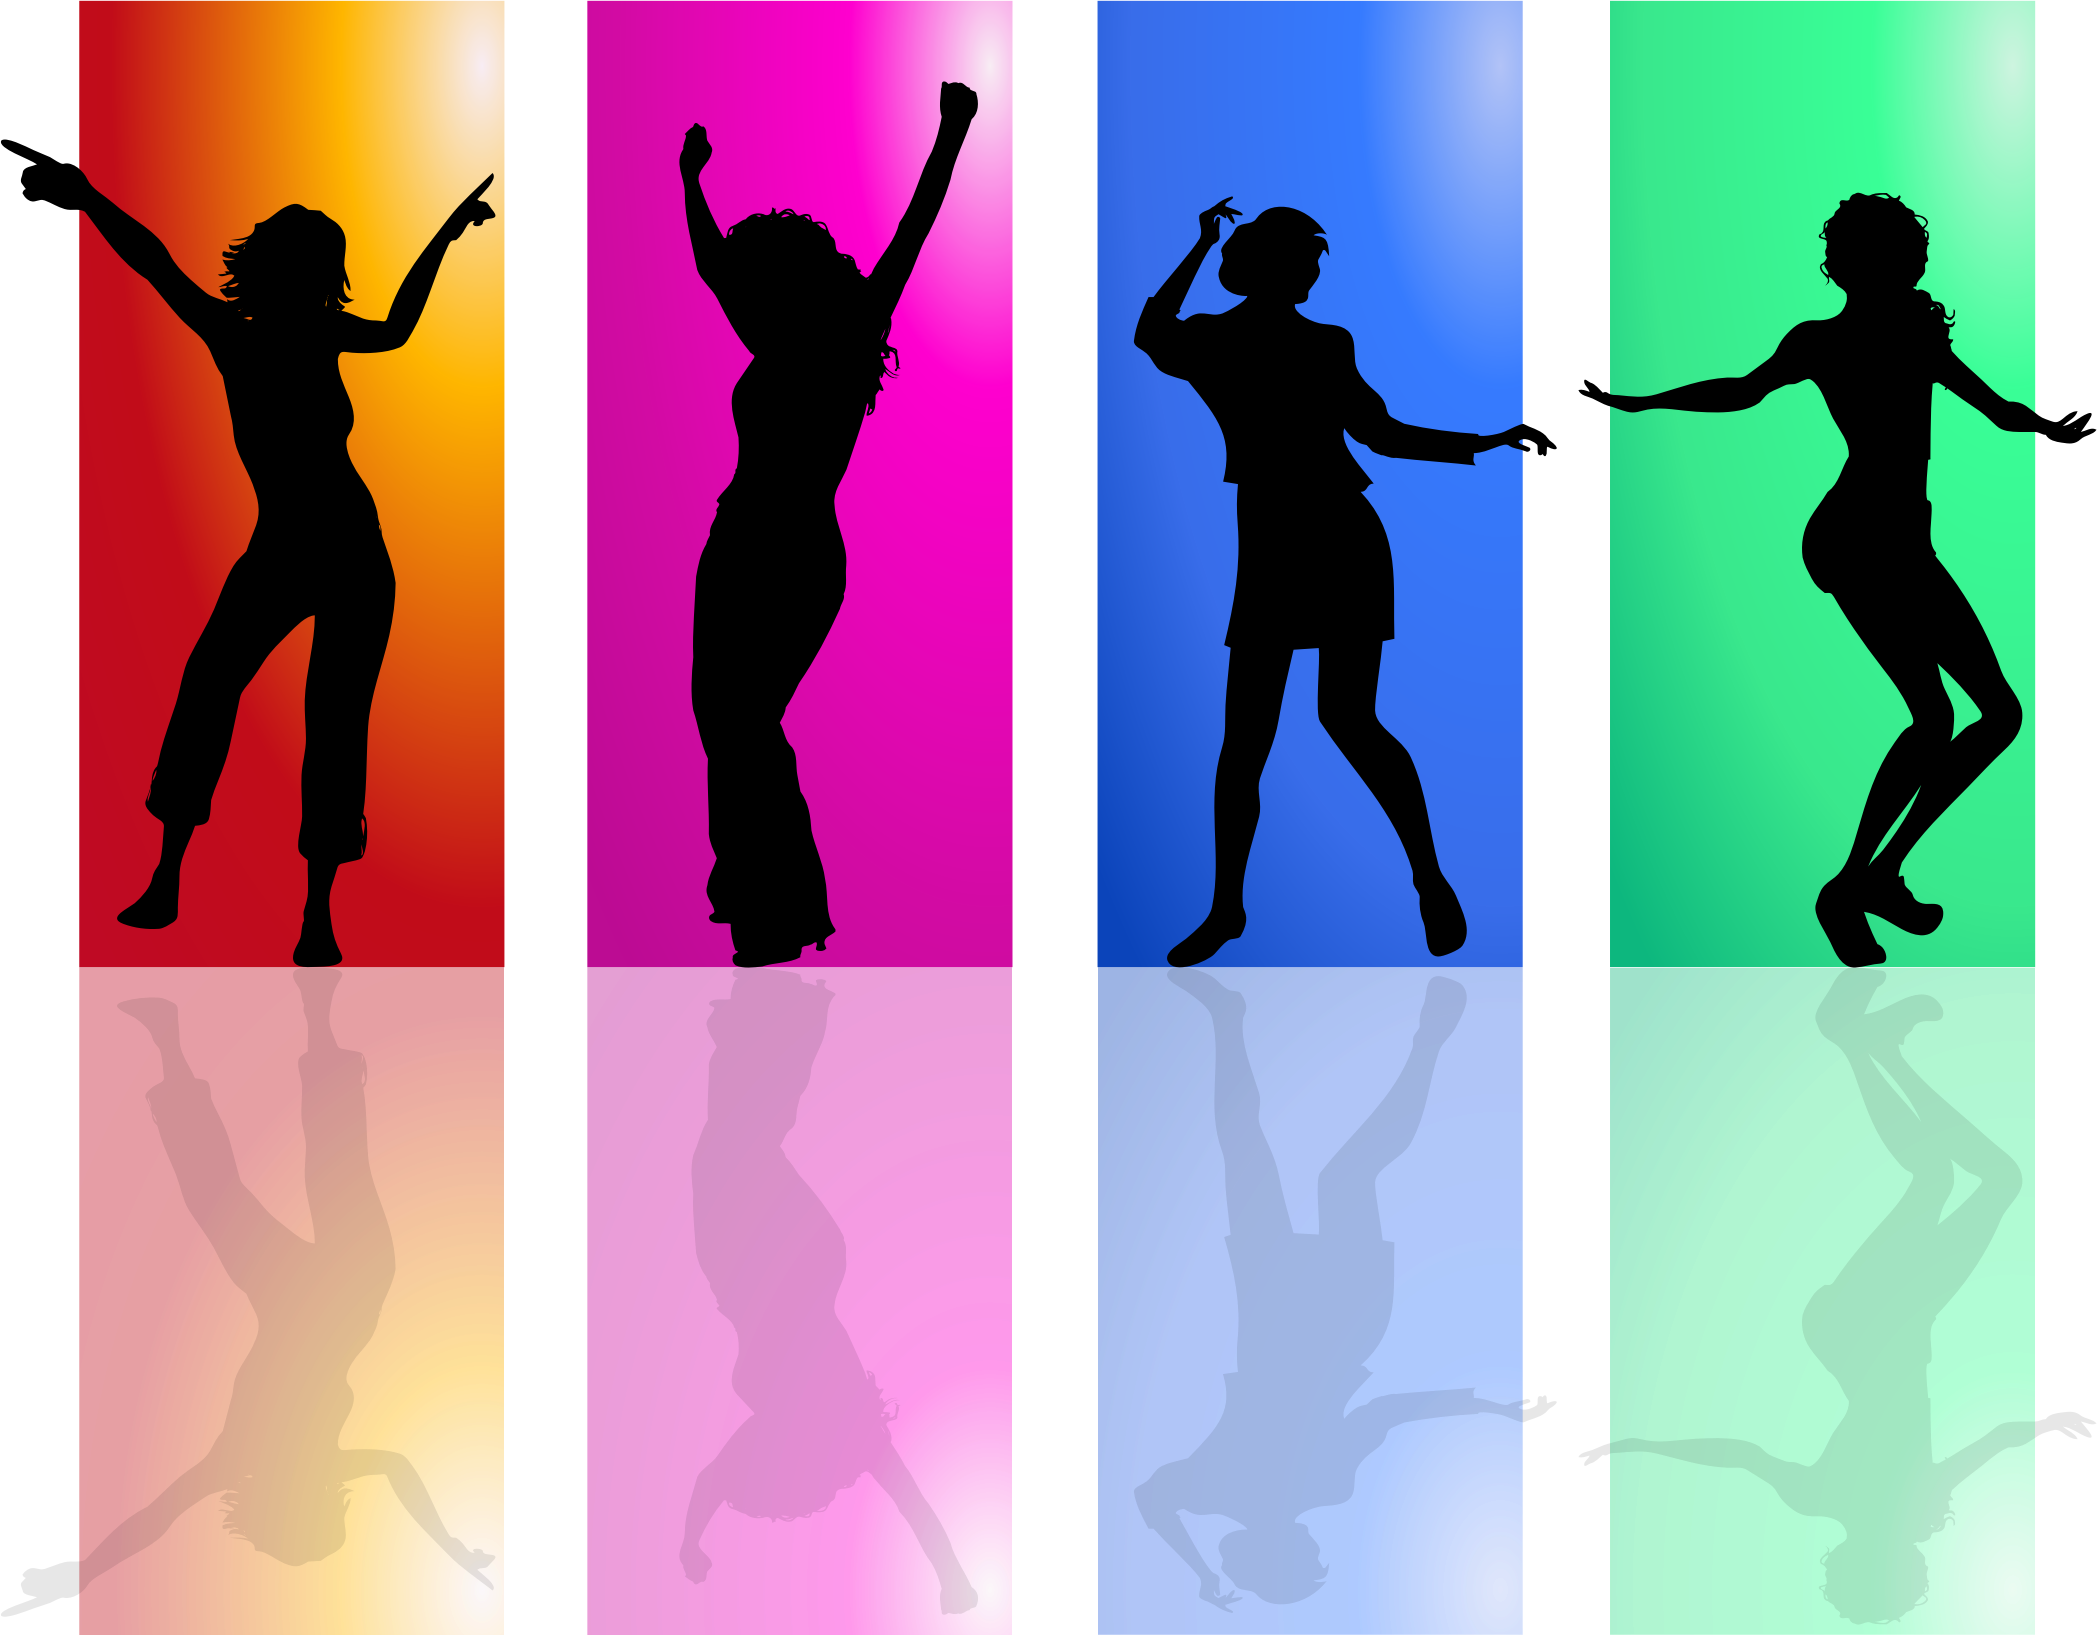 Woman dancing png. Colorful women silhouette by